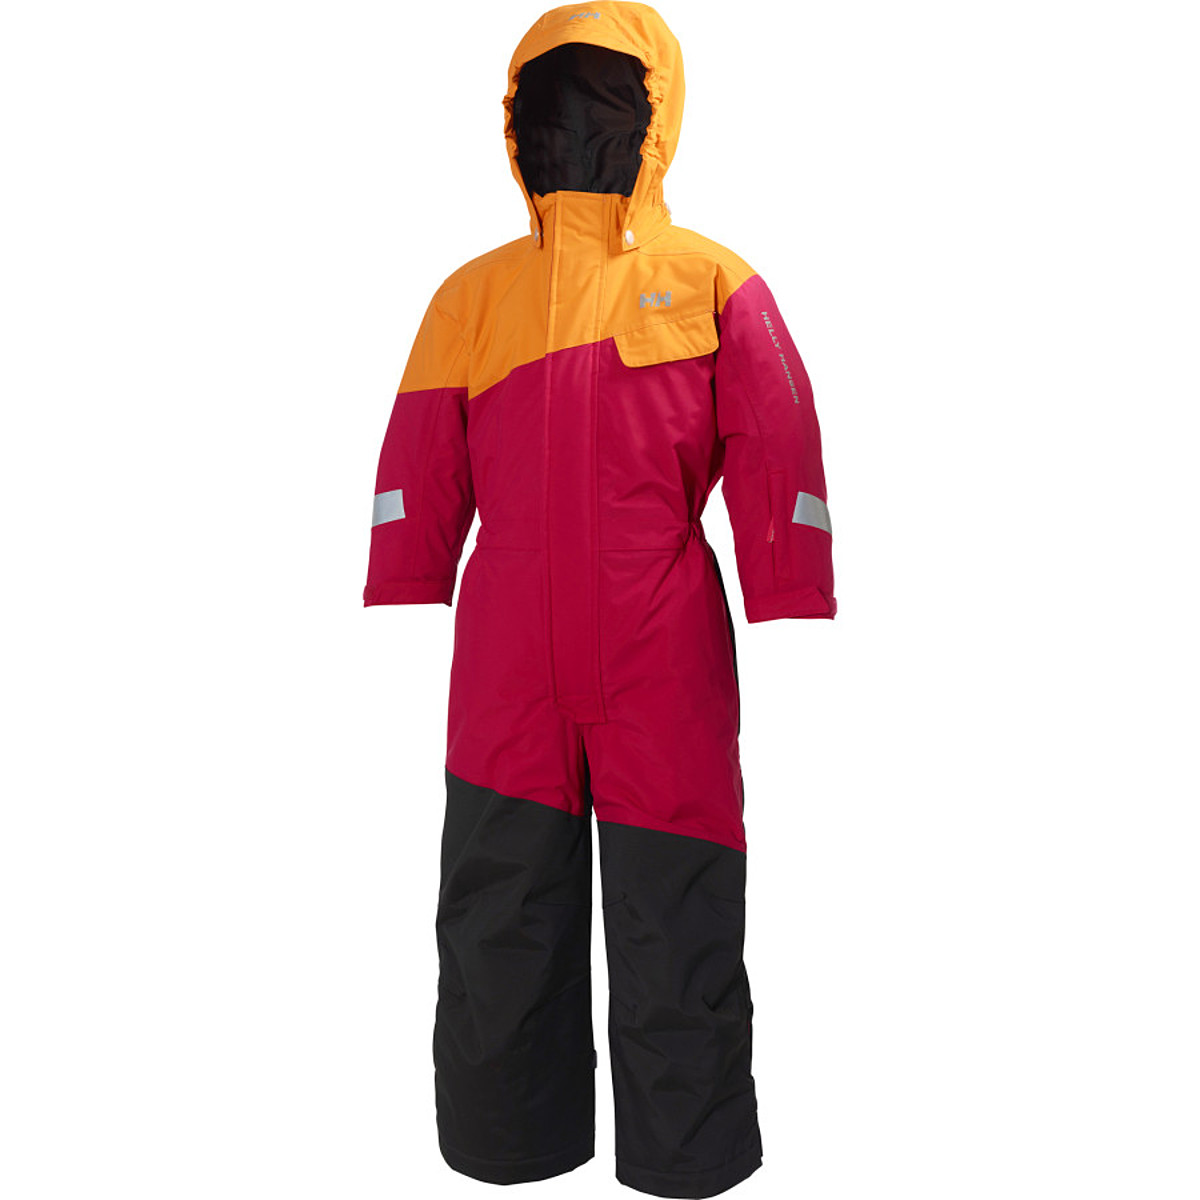 Helly Hansen Rider Ski Suit